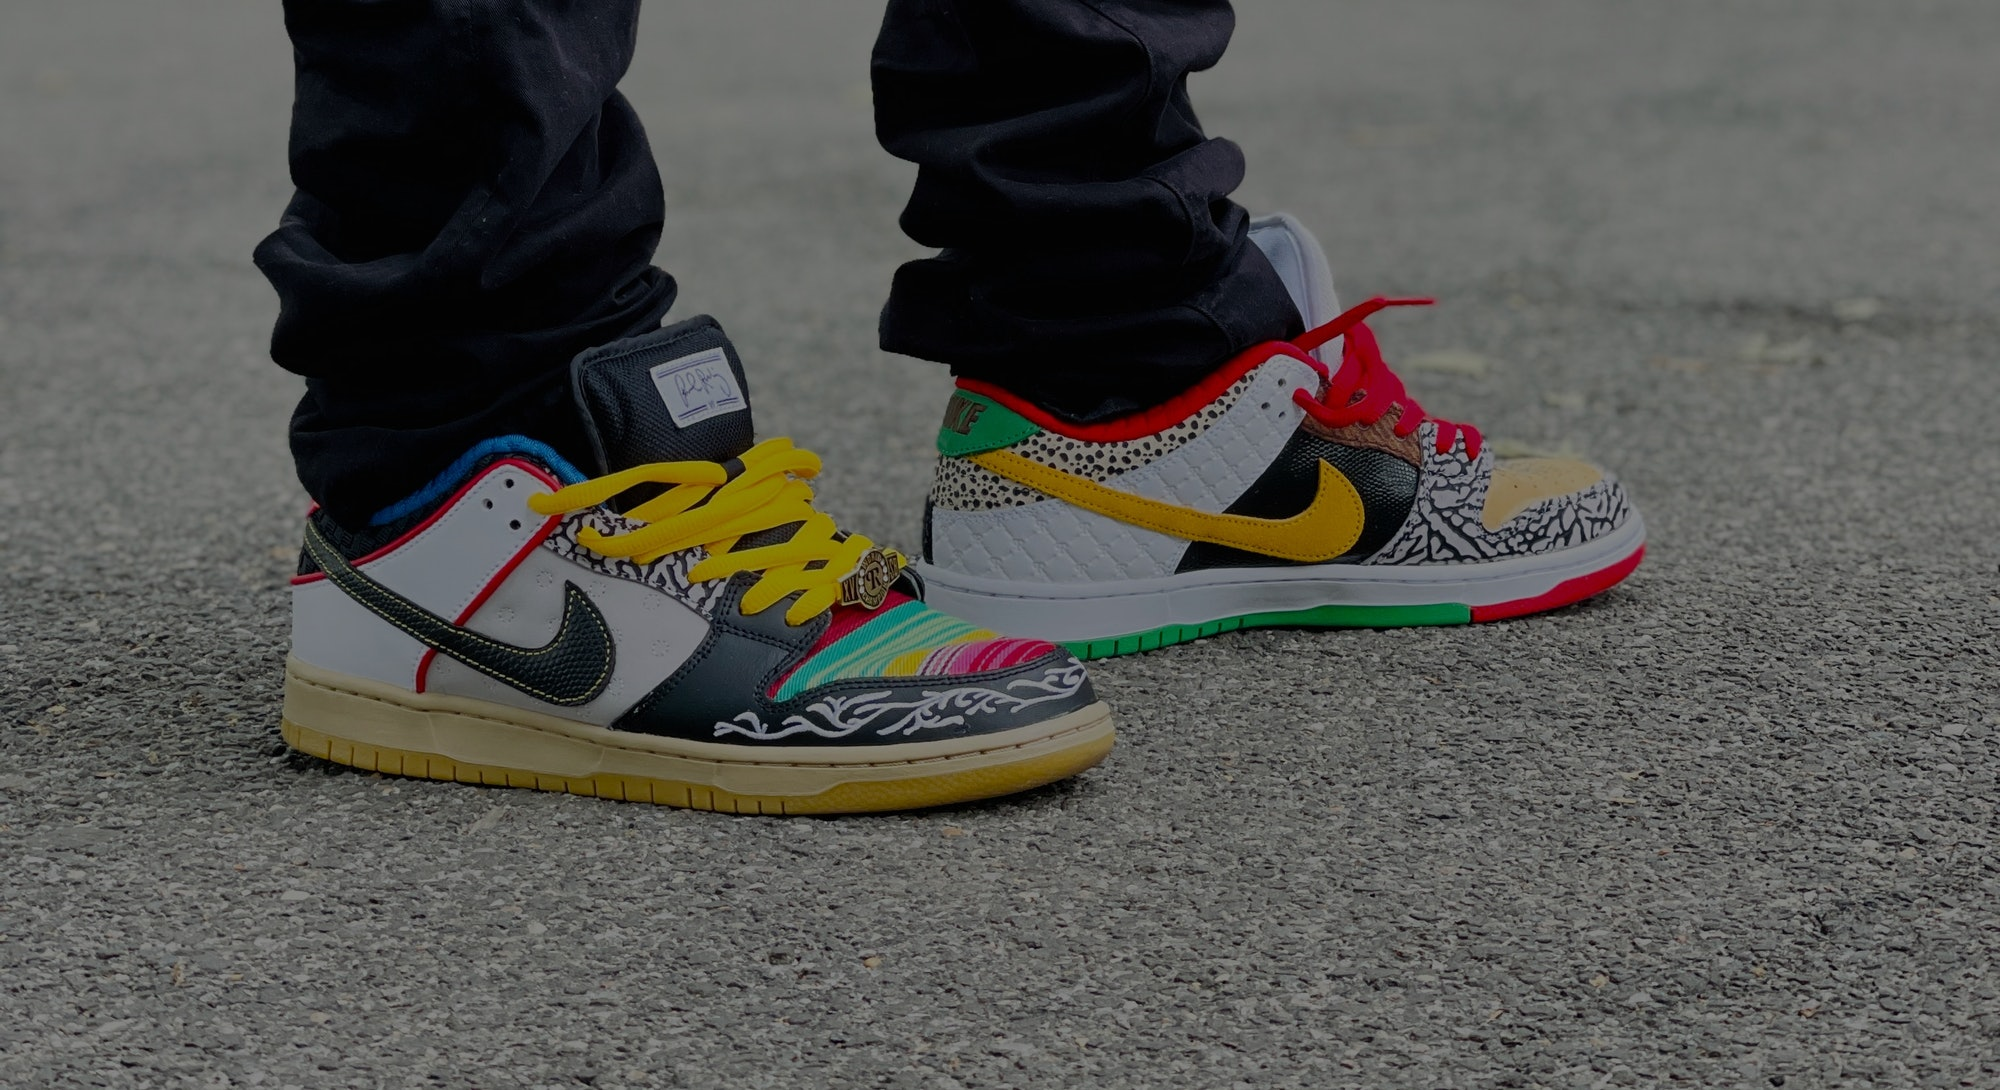 Nike What The Paul SB Dunk What The P-Rod on feet review. Shoes. Fashion. Streetwear. Clothing. Style.